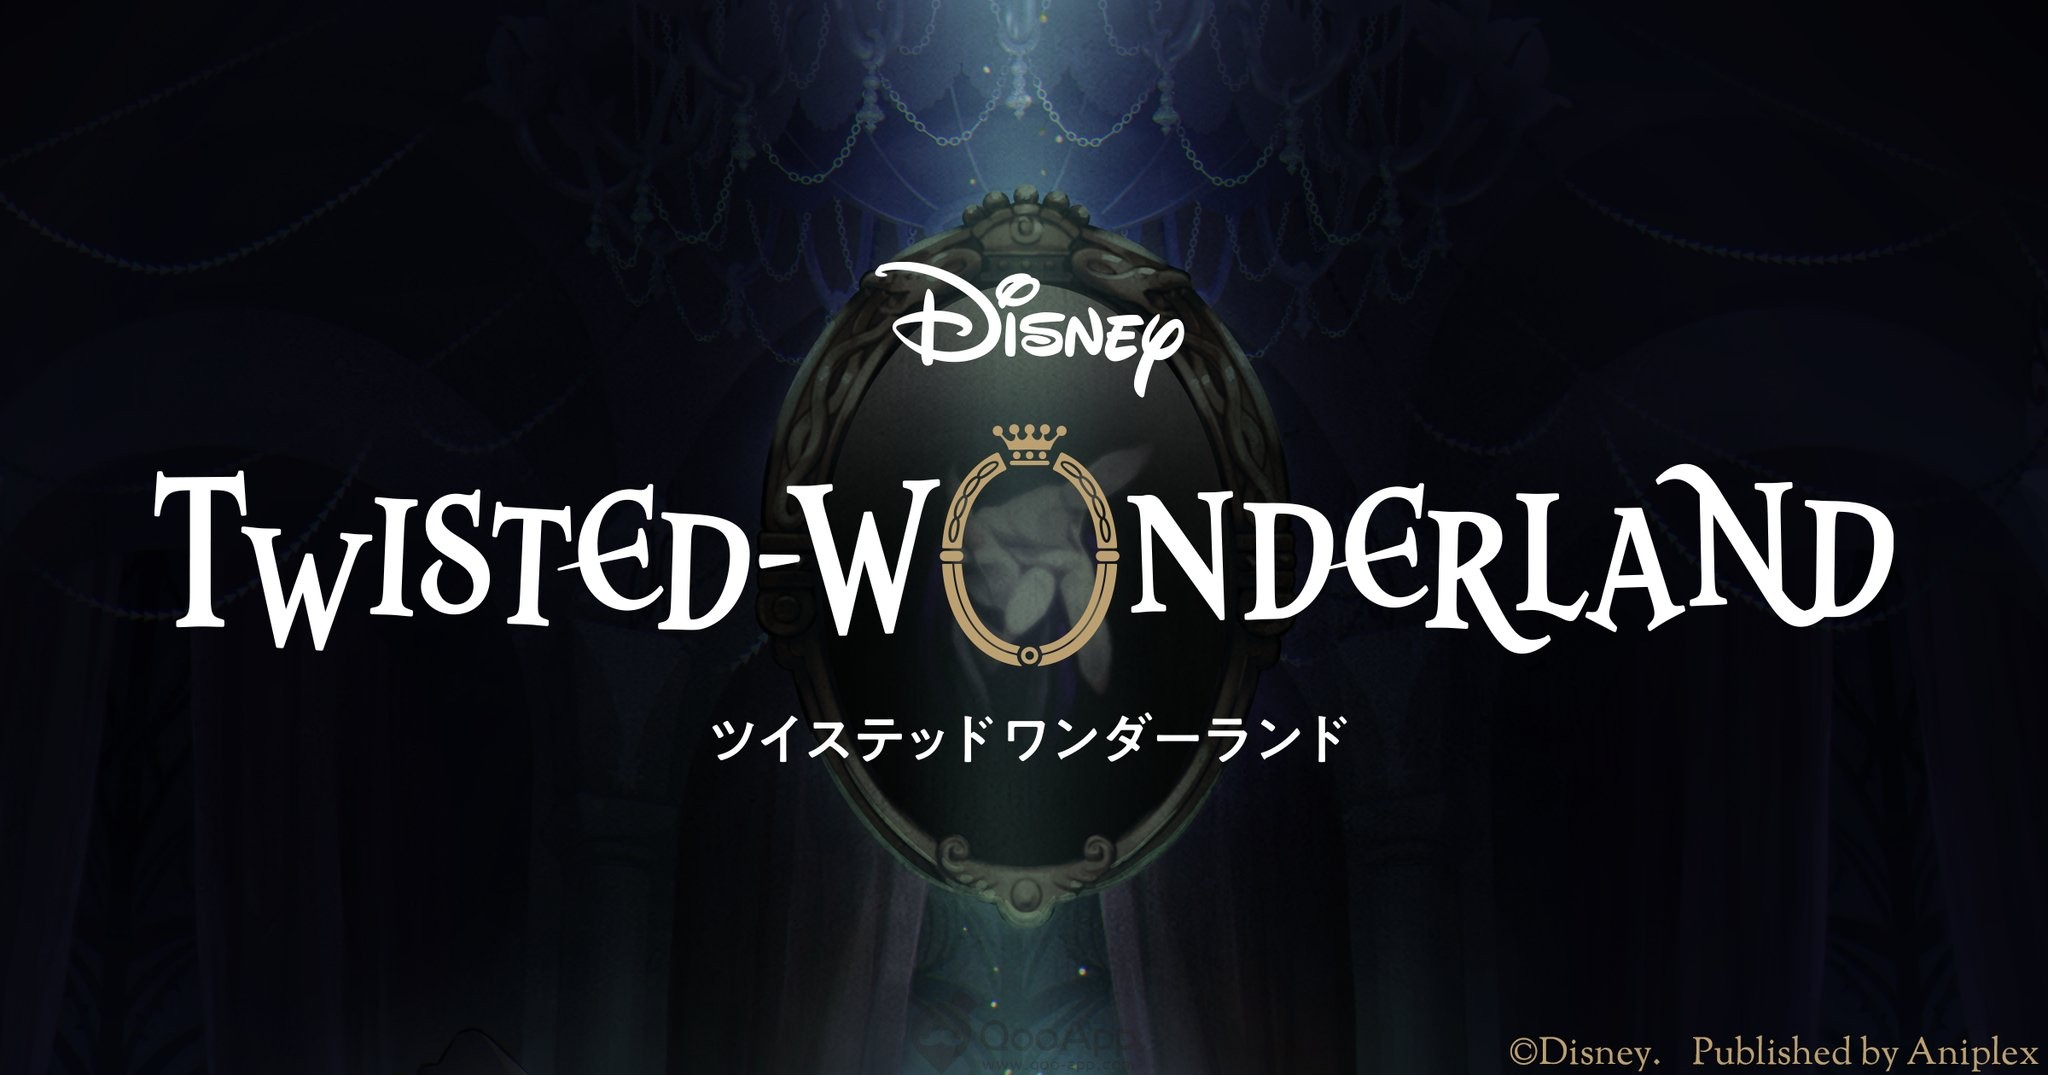 Disney Twisted Wonderland World Setting & Characters Revealed